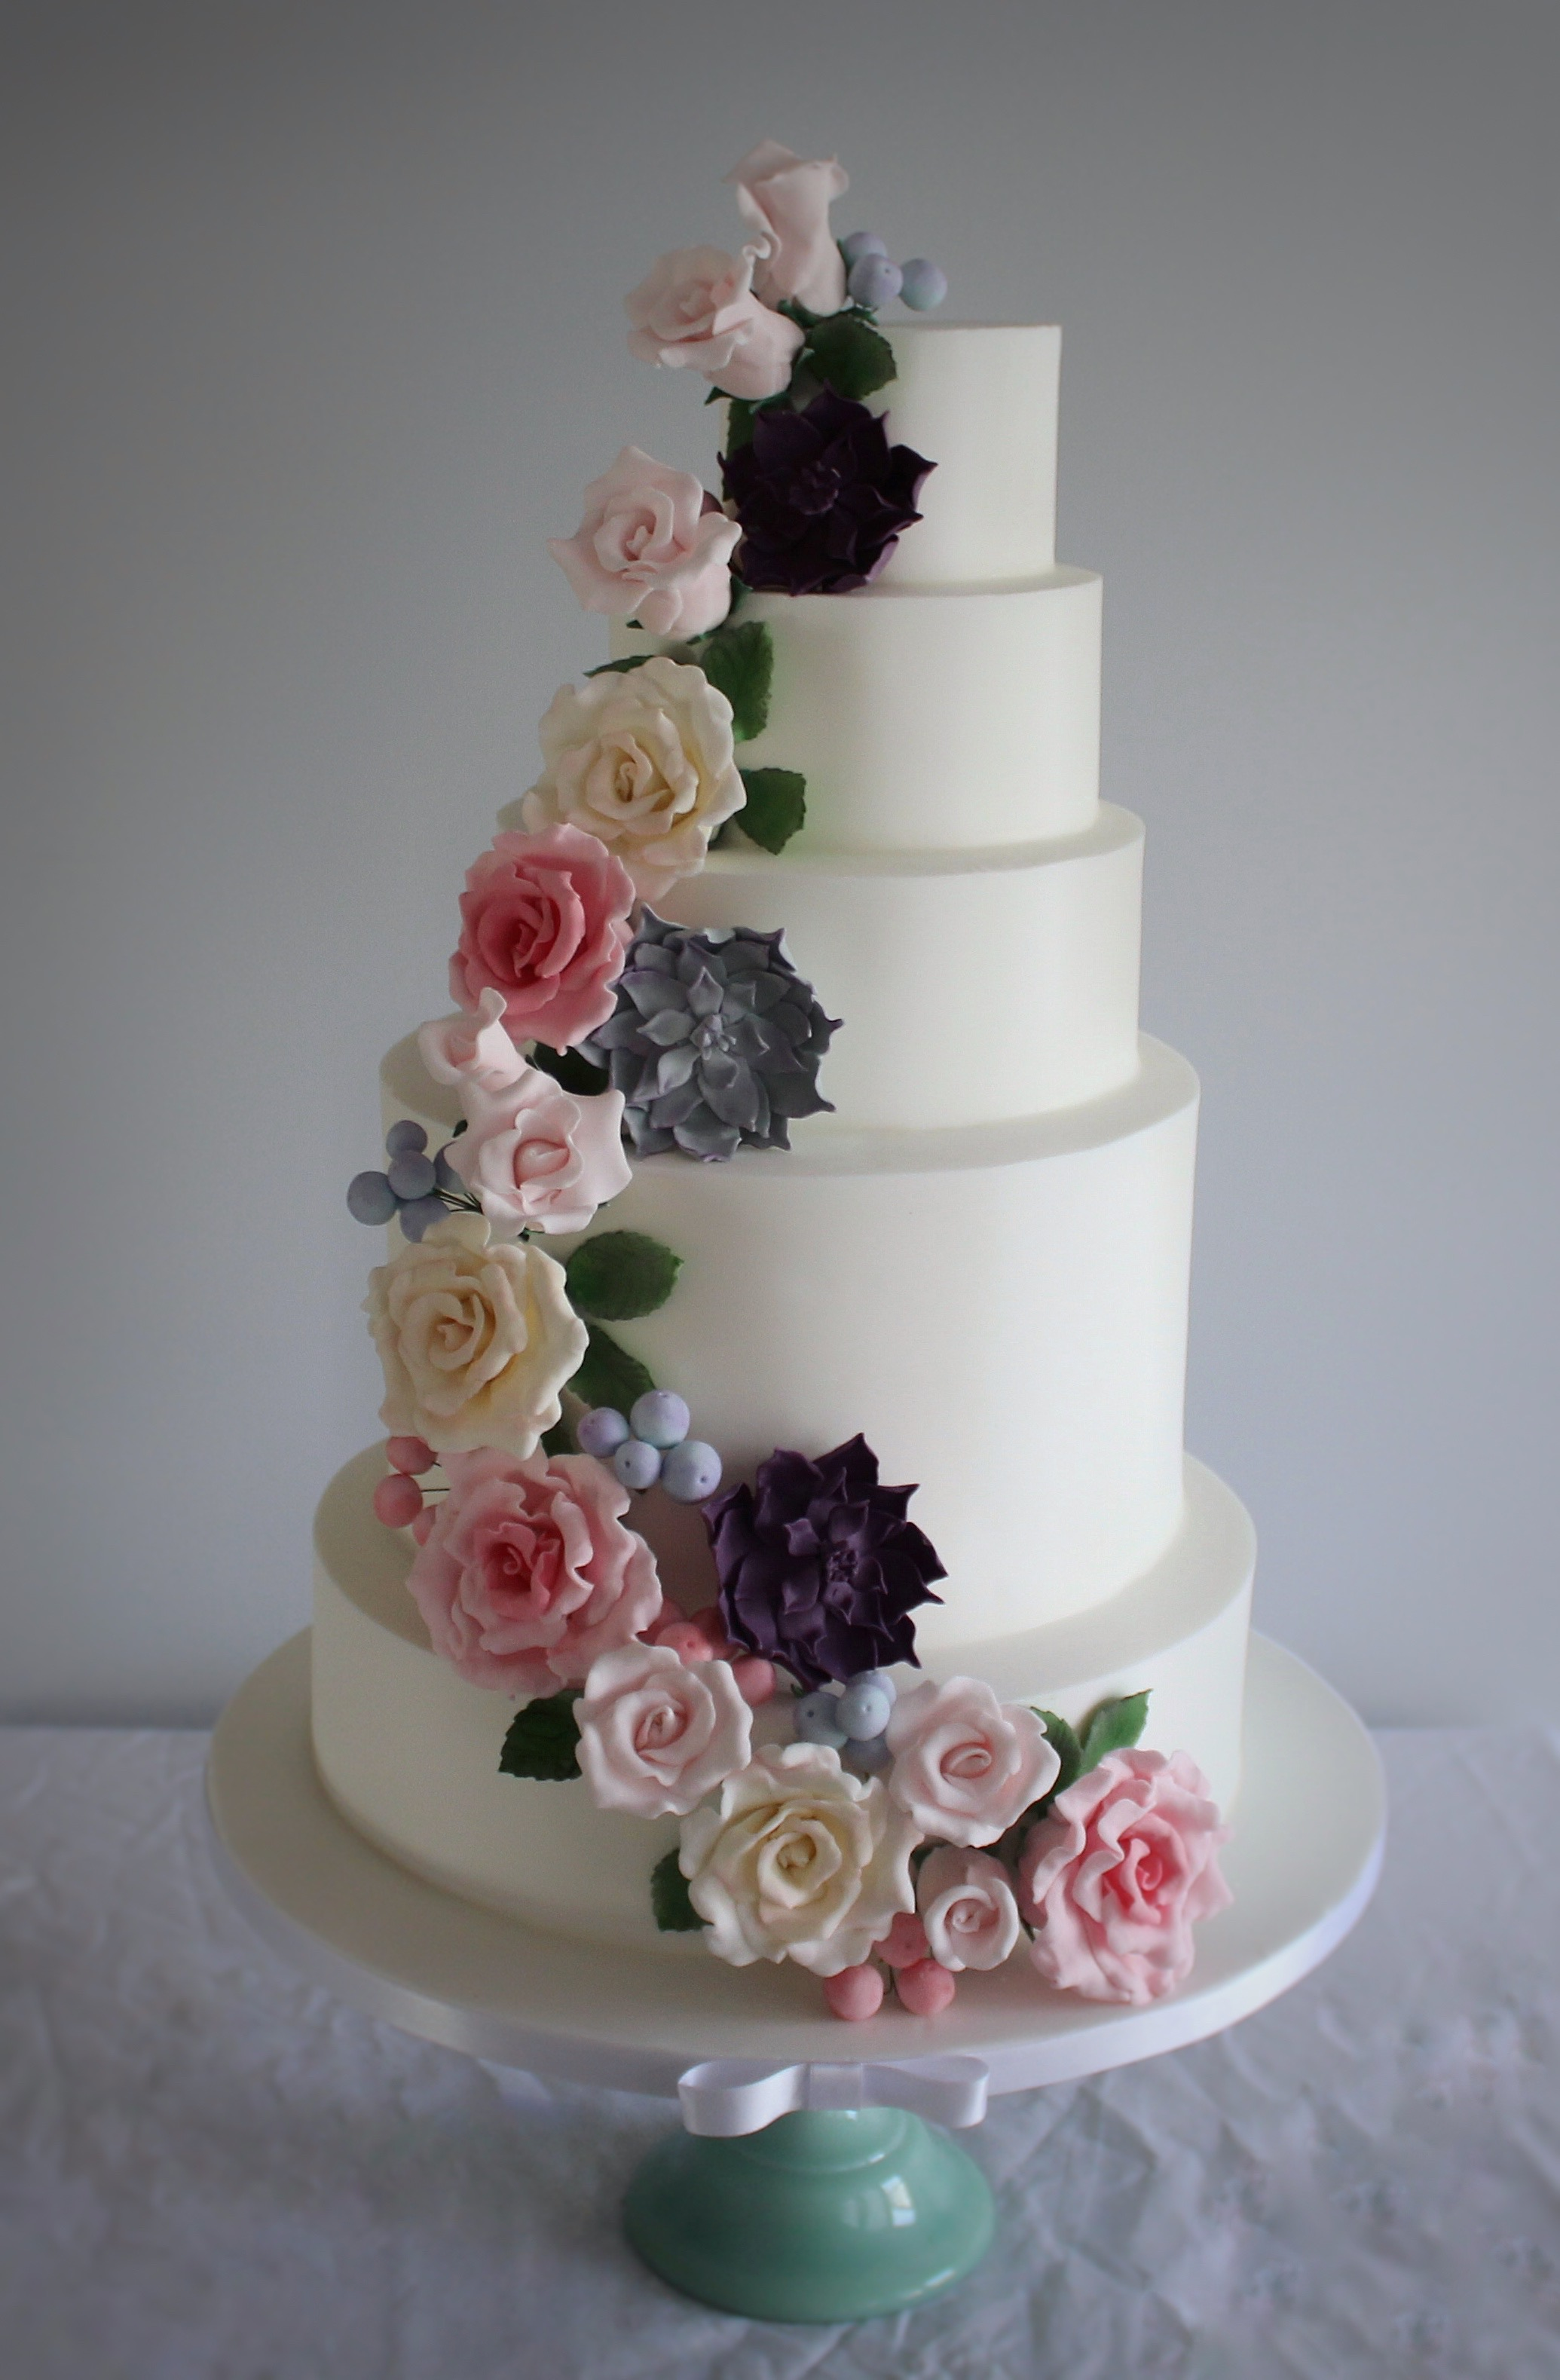 6 Tier Wedding Cake With A Cascade Of Pastel Sugar Roses Succulents And Berries Luxury